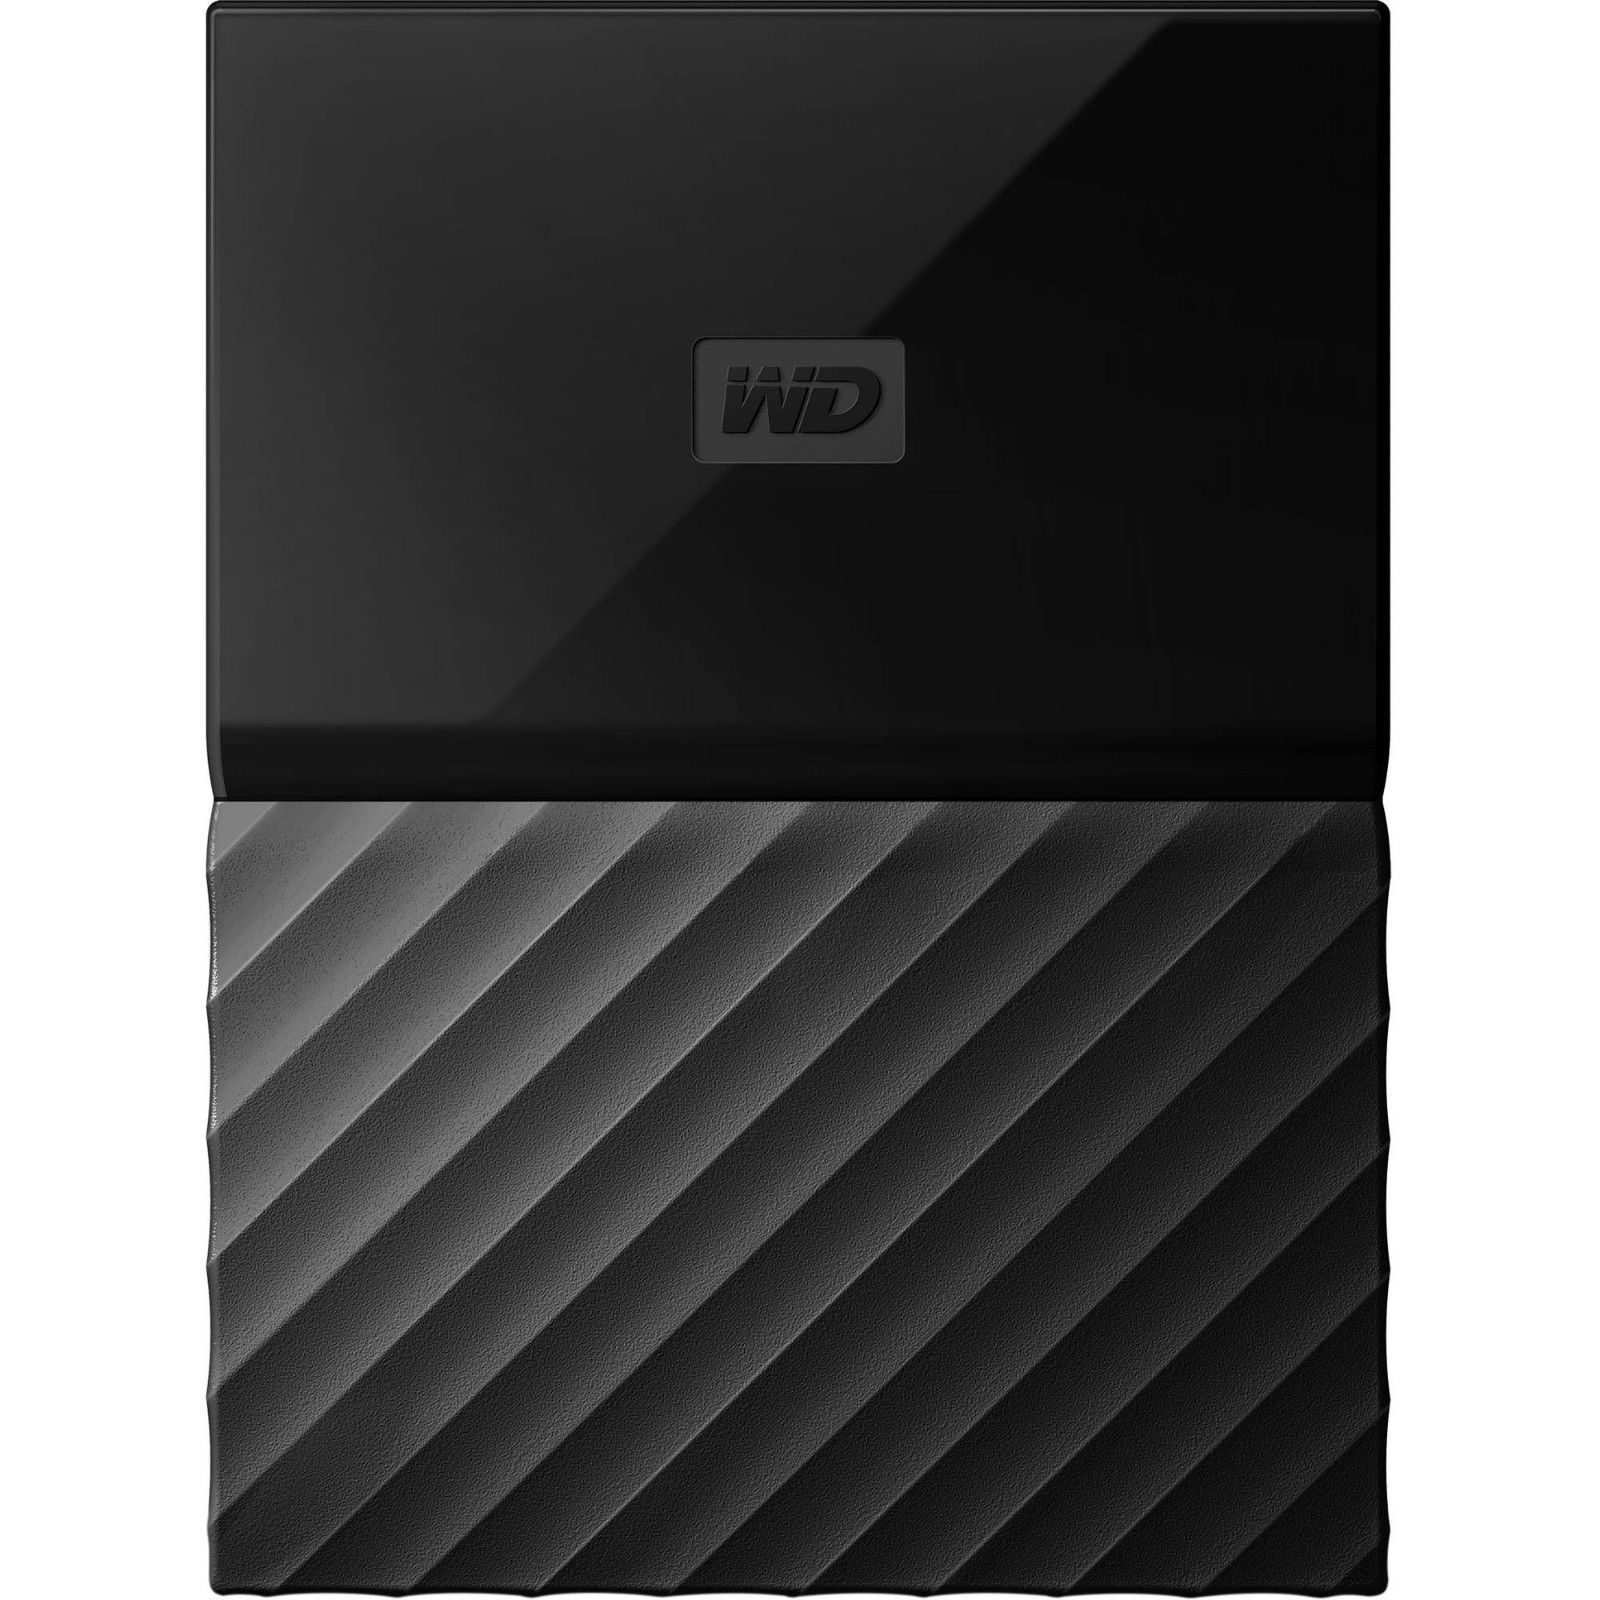 Western-Digital-WD-My-Passport-1TB-2TB-4TB-2-5-034-Portable-External-Hard-Drive-HDD thumbnail 3